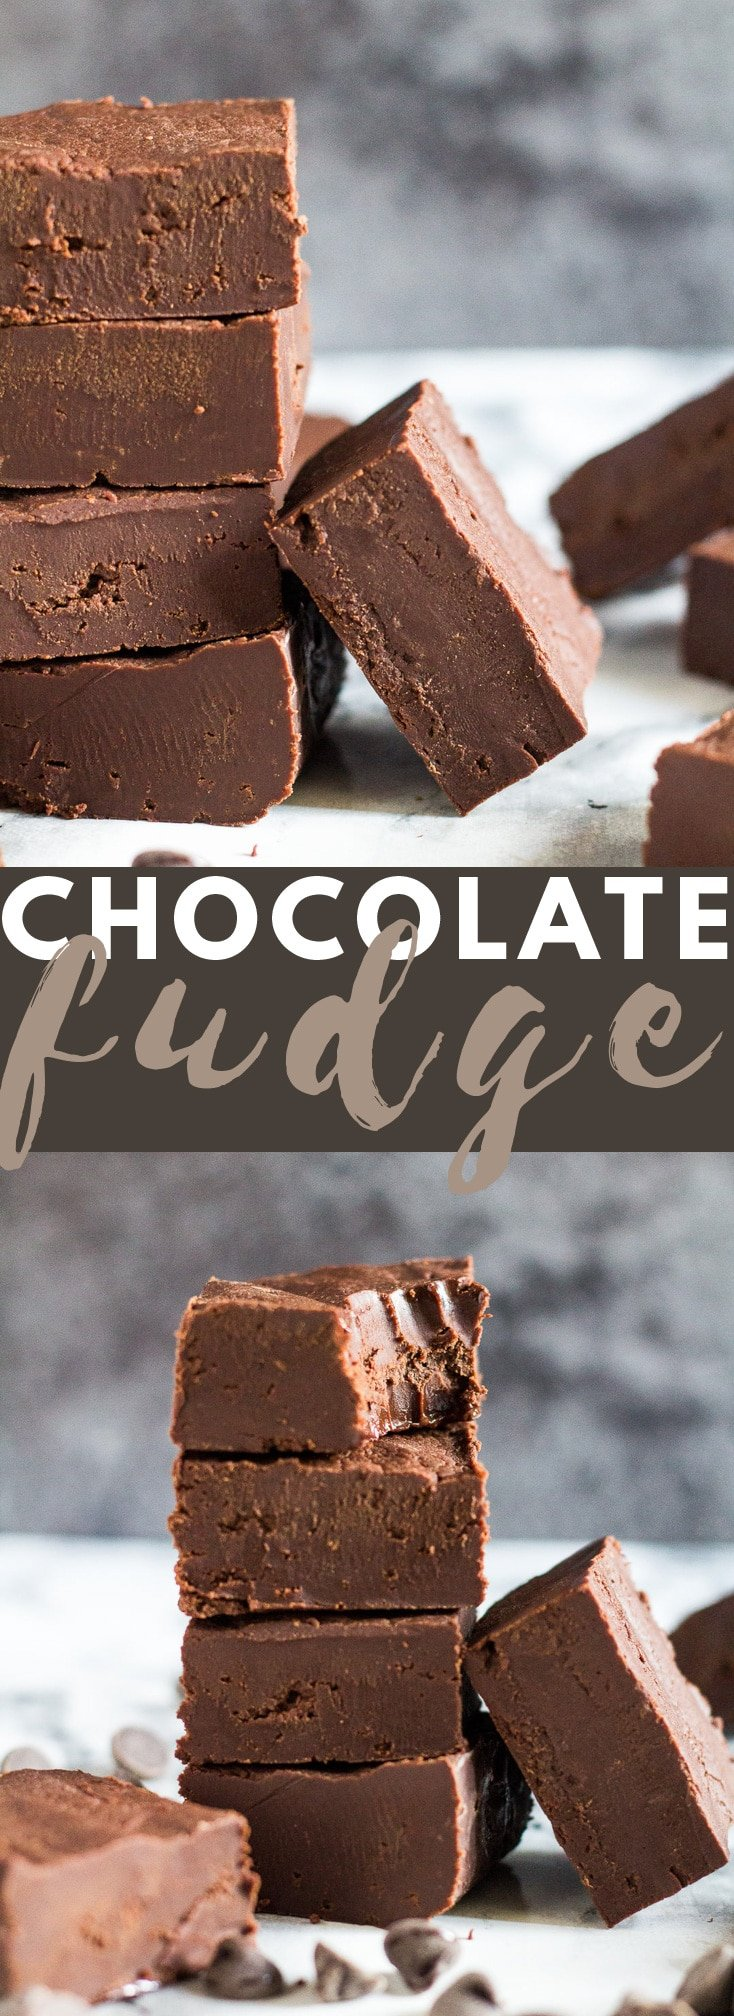 Easy Chocolate Fudge - Incredibly easy and deliciously creamy chocolate fudge that only requires 4 ingredients to make! #chocolate #fudge #fudgerecipes